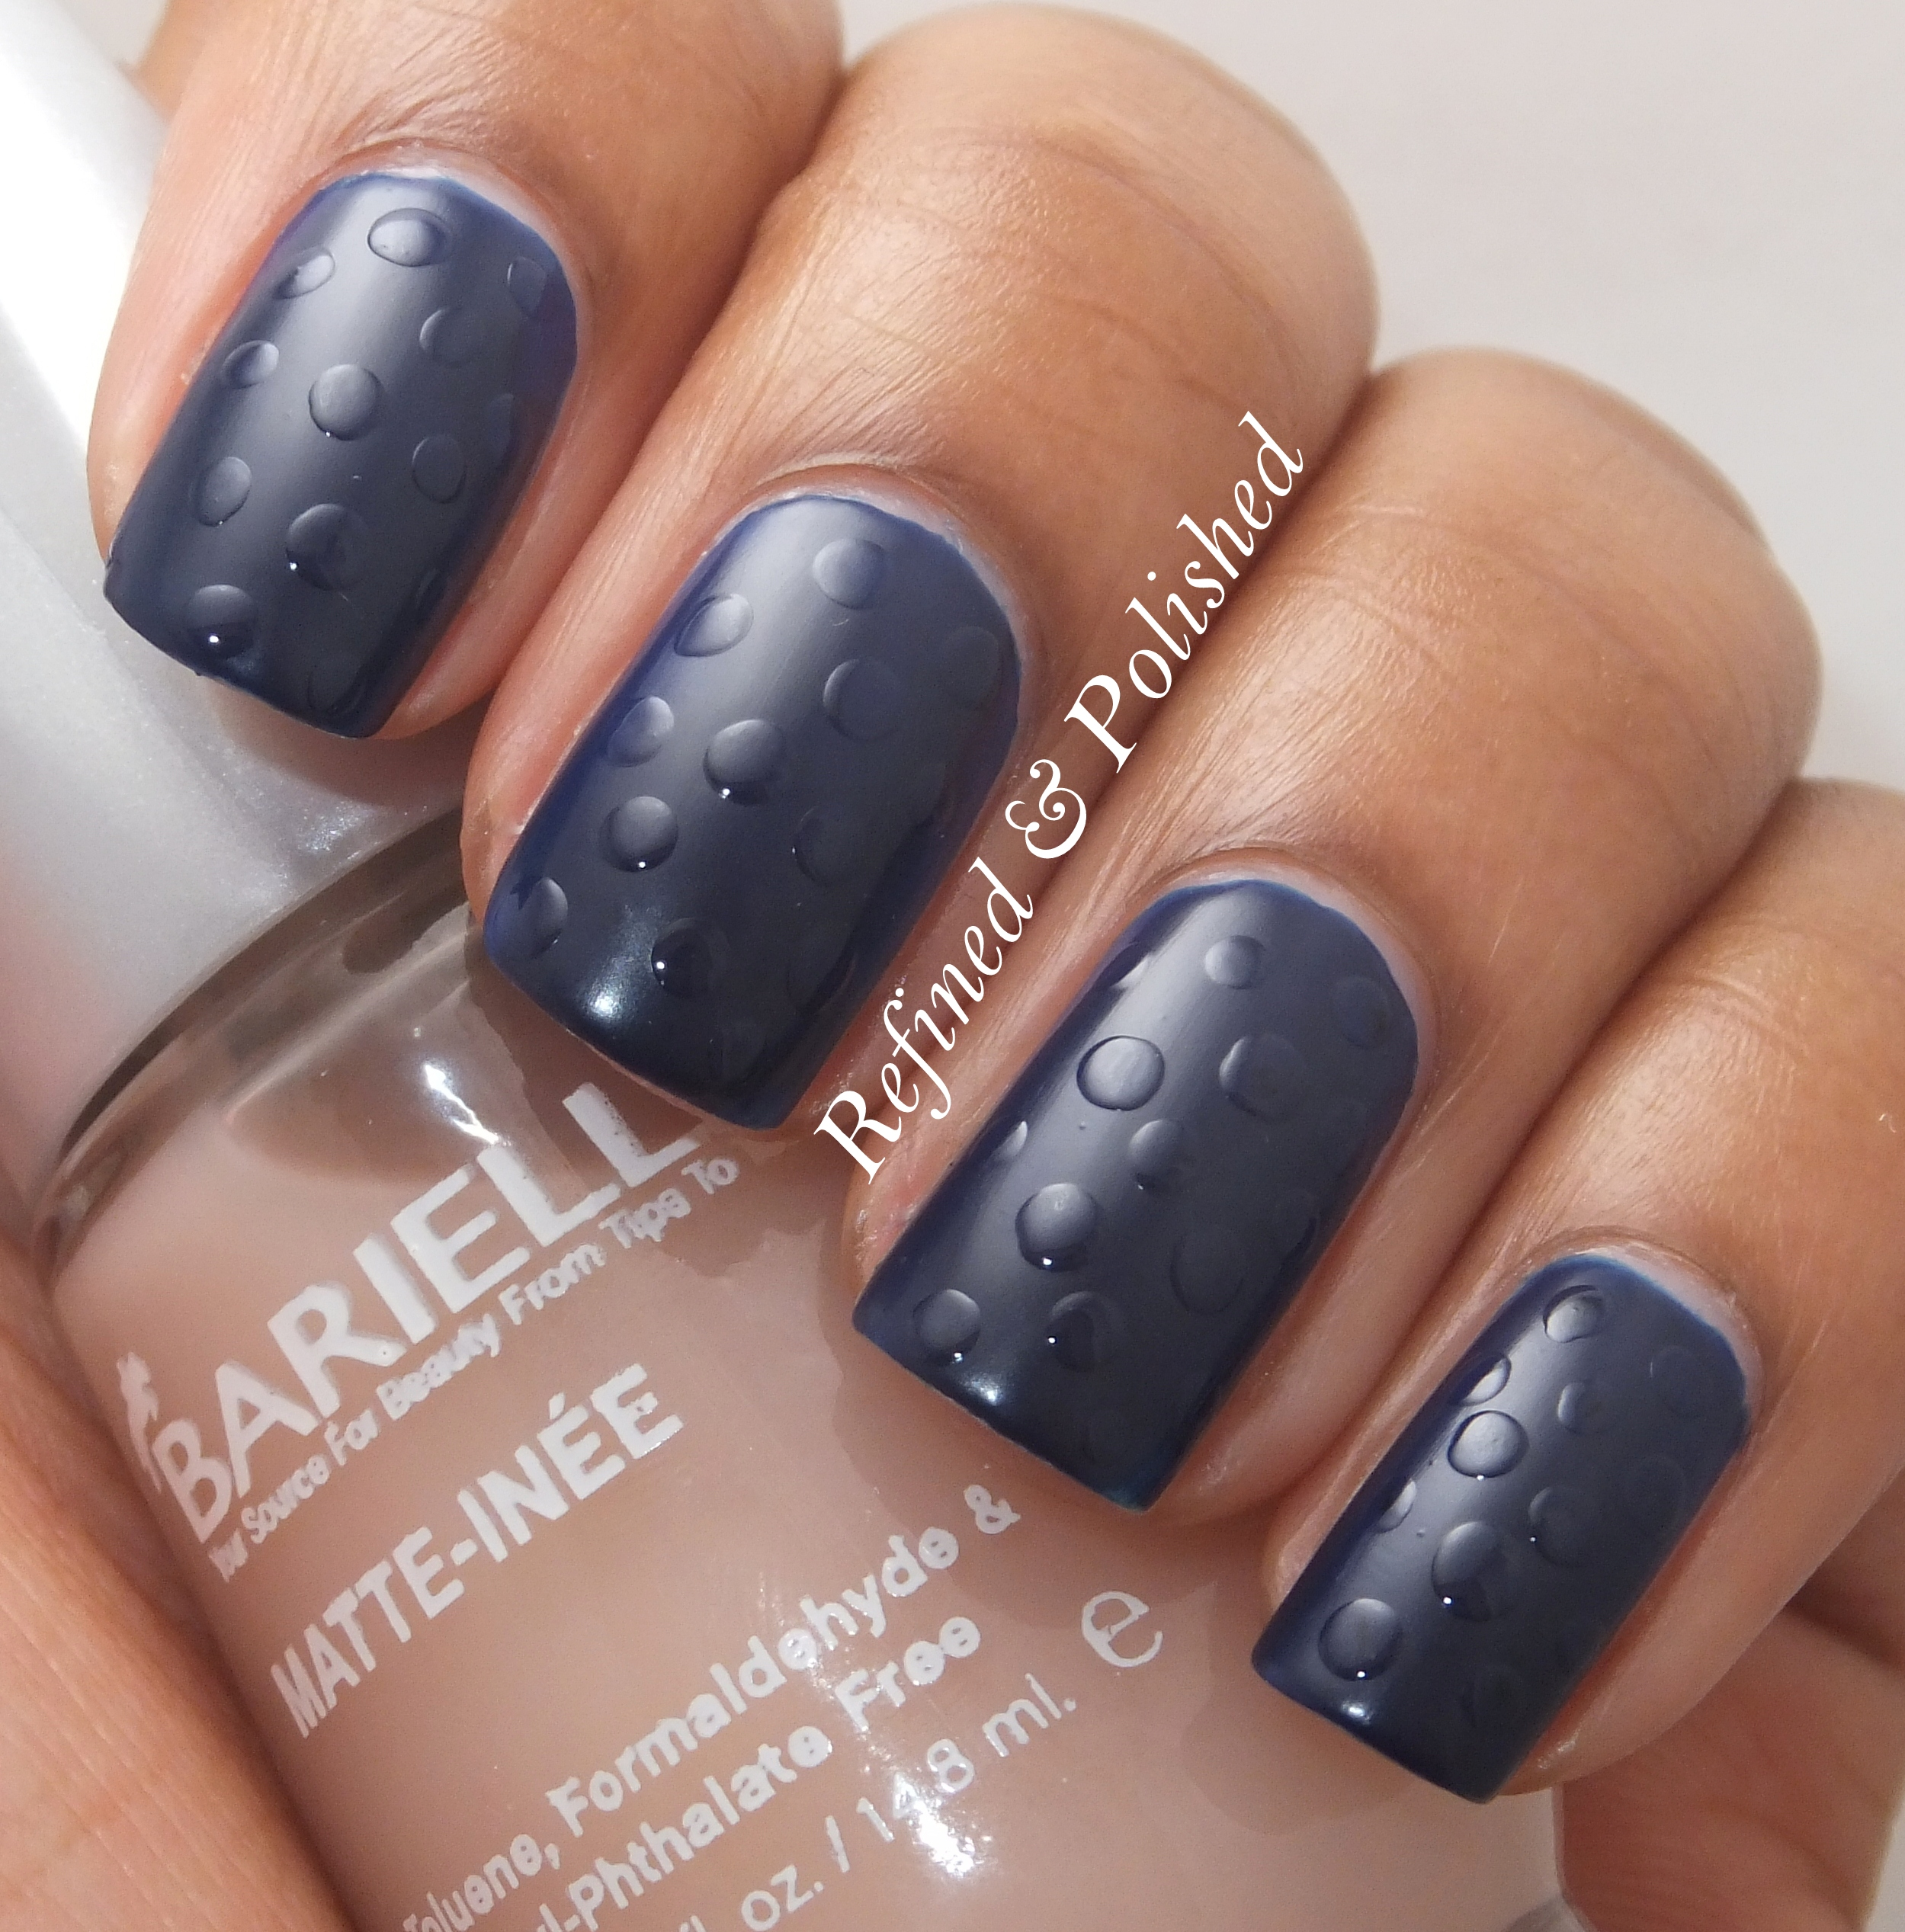 Barielle Berry Blue & Matte-inee - Refined and Polished